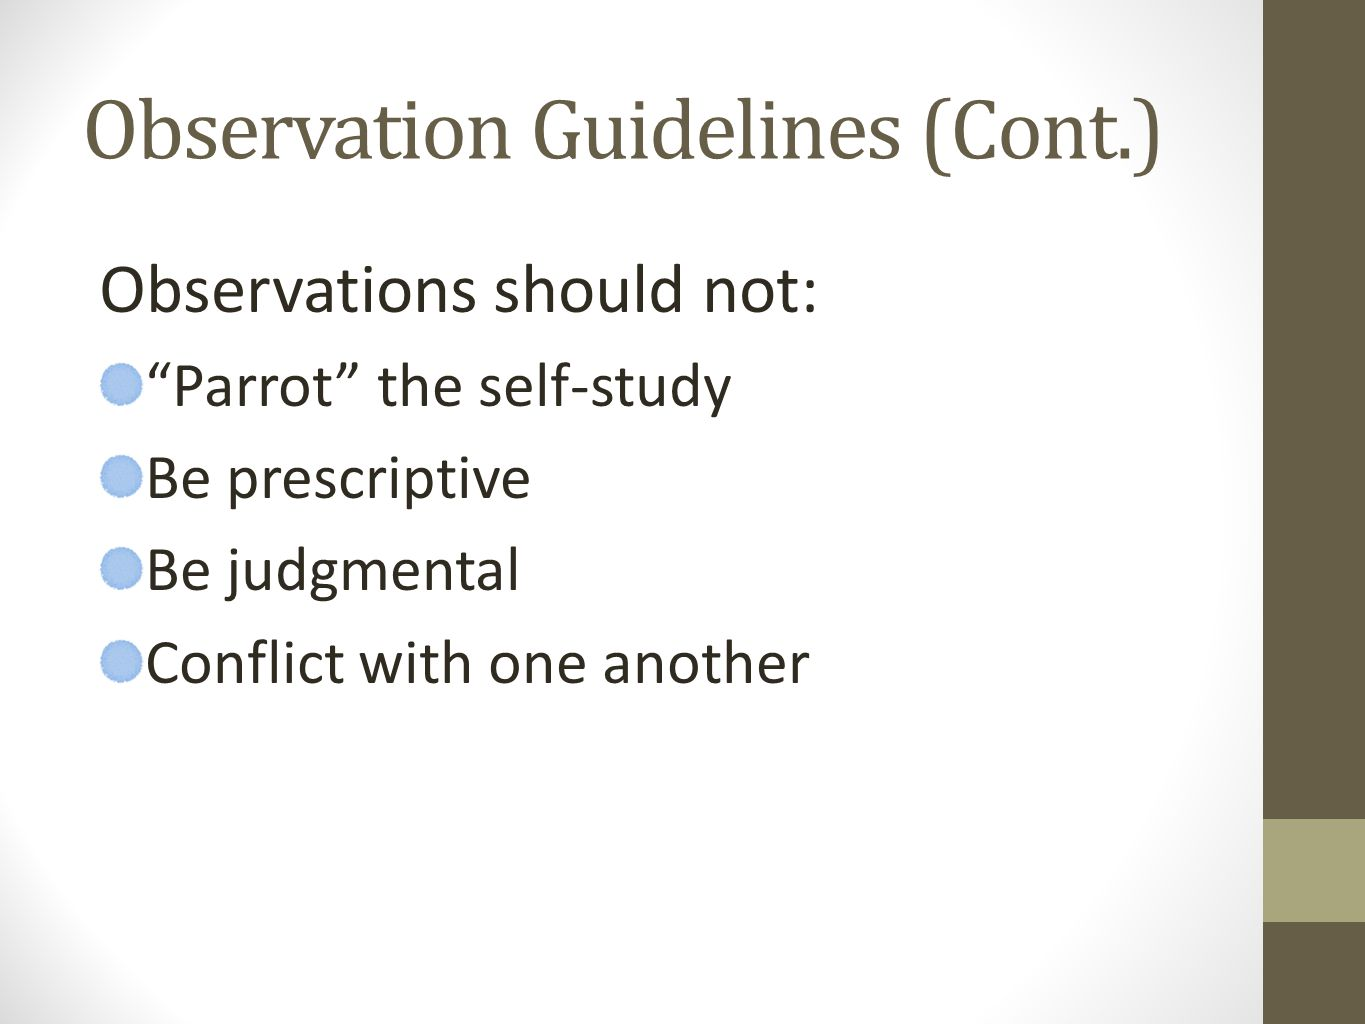 Observation Guidelines (Cont.) Observations should not: Parrot the self-study Be prescriptive Be judgmental Conflict with one another